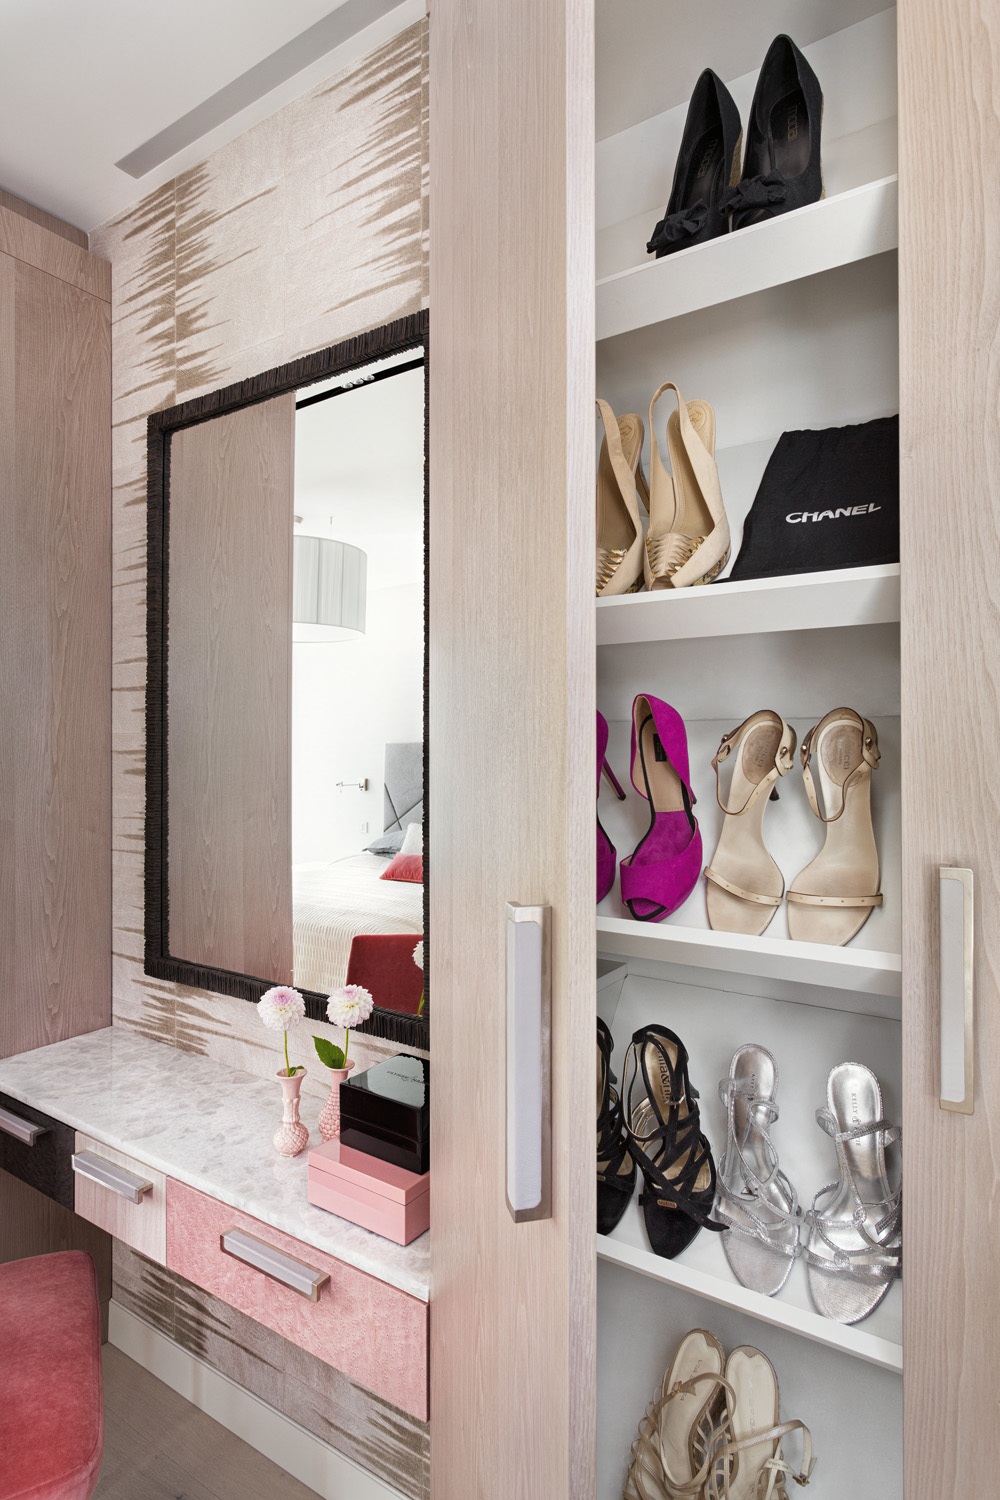 Drawers in contrasting colours create a nice balance to the study area